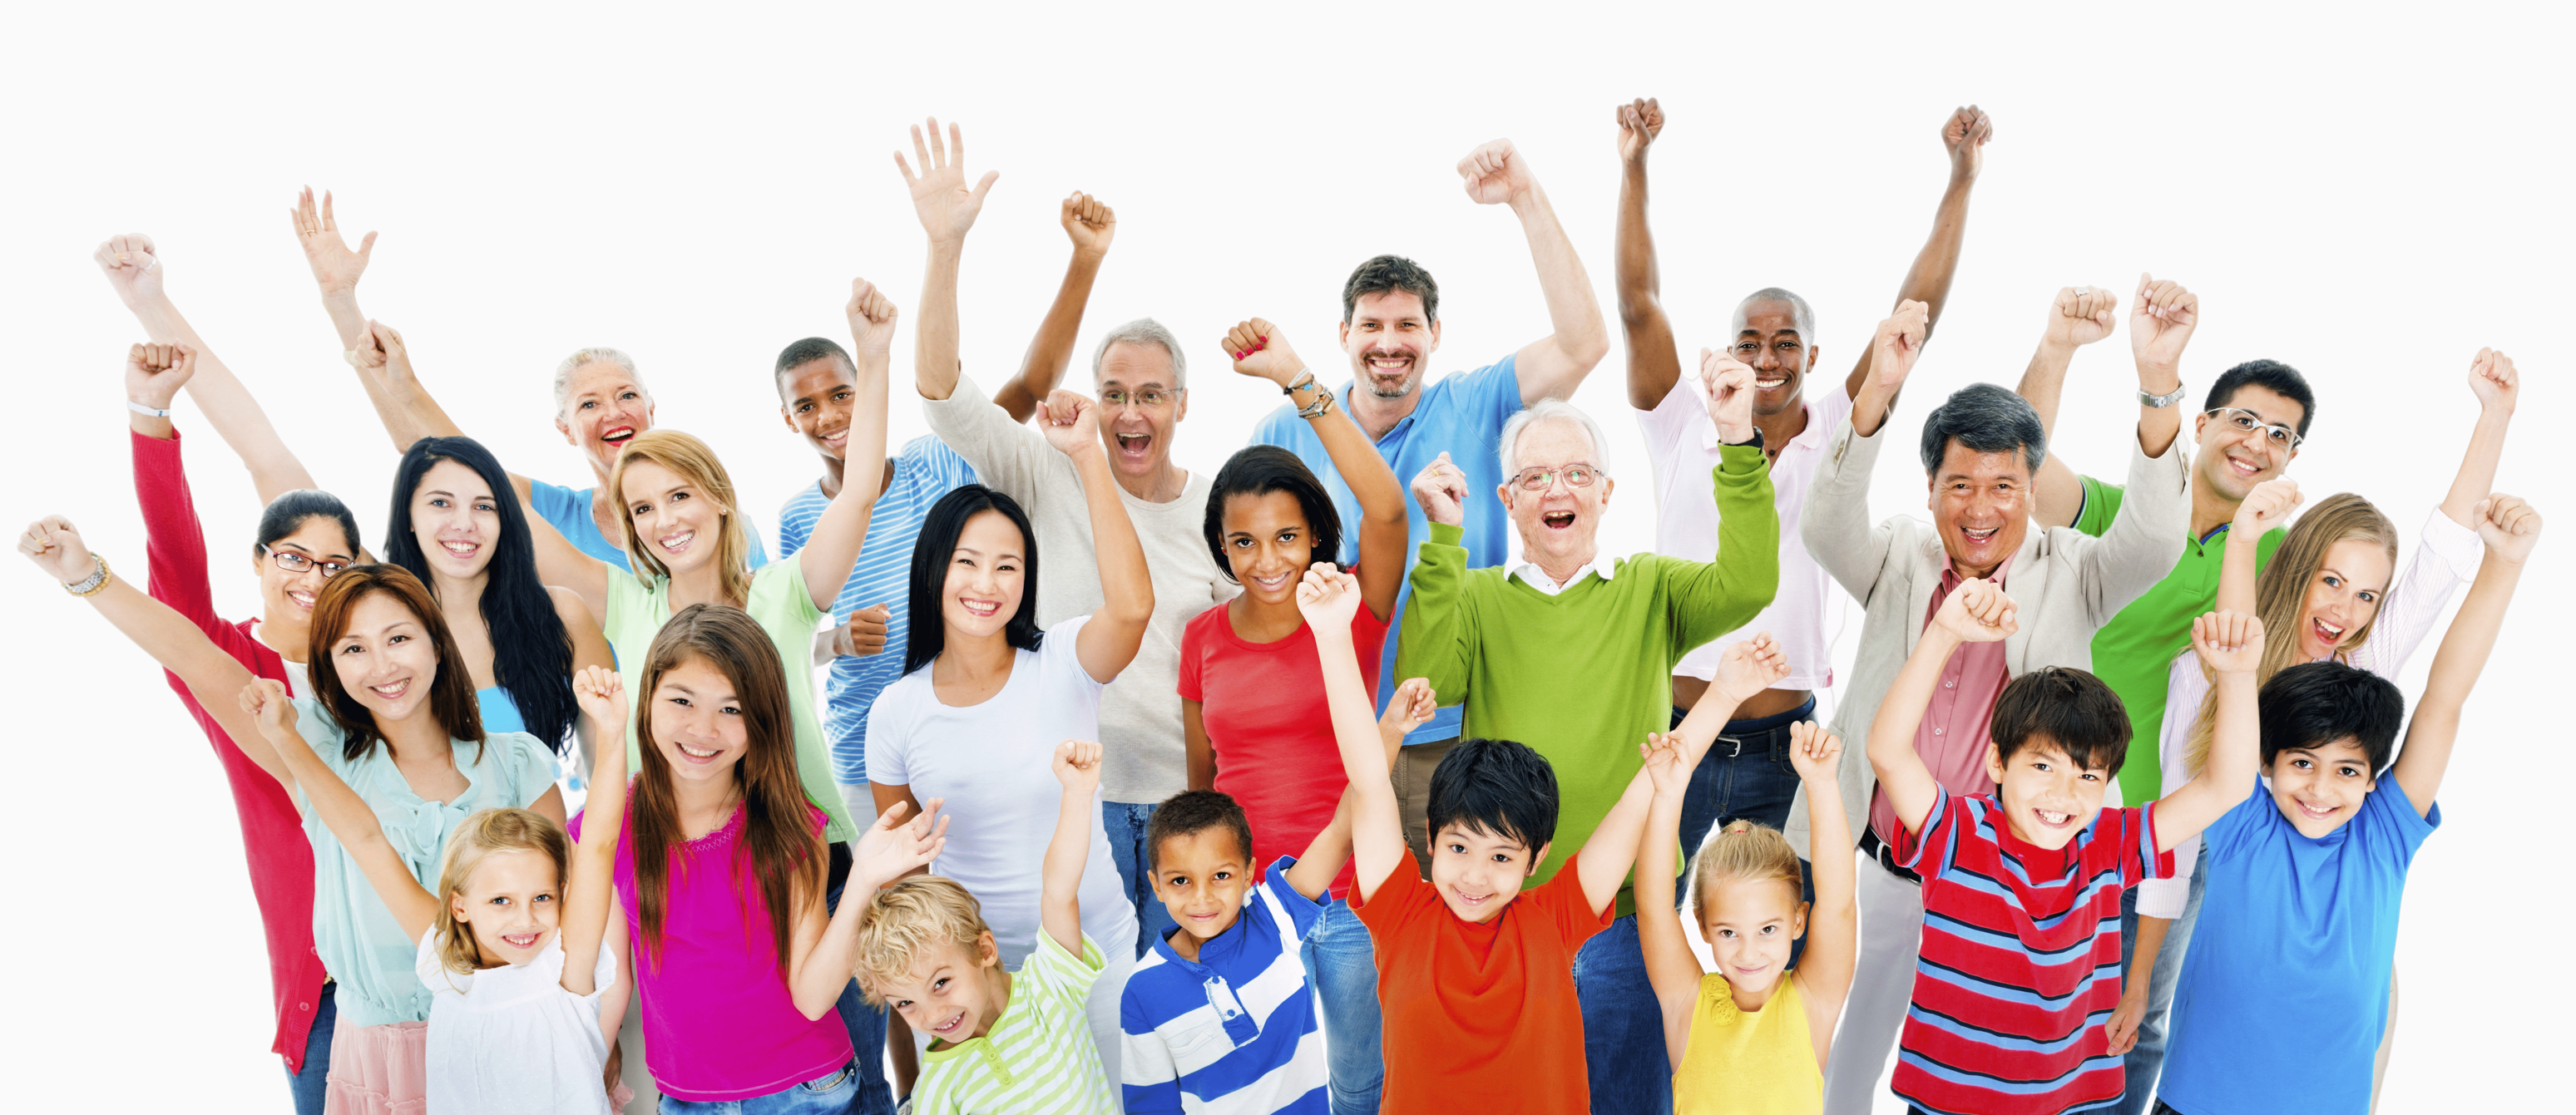 group of people with hands in the air